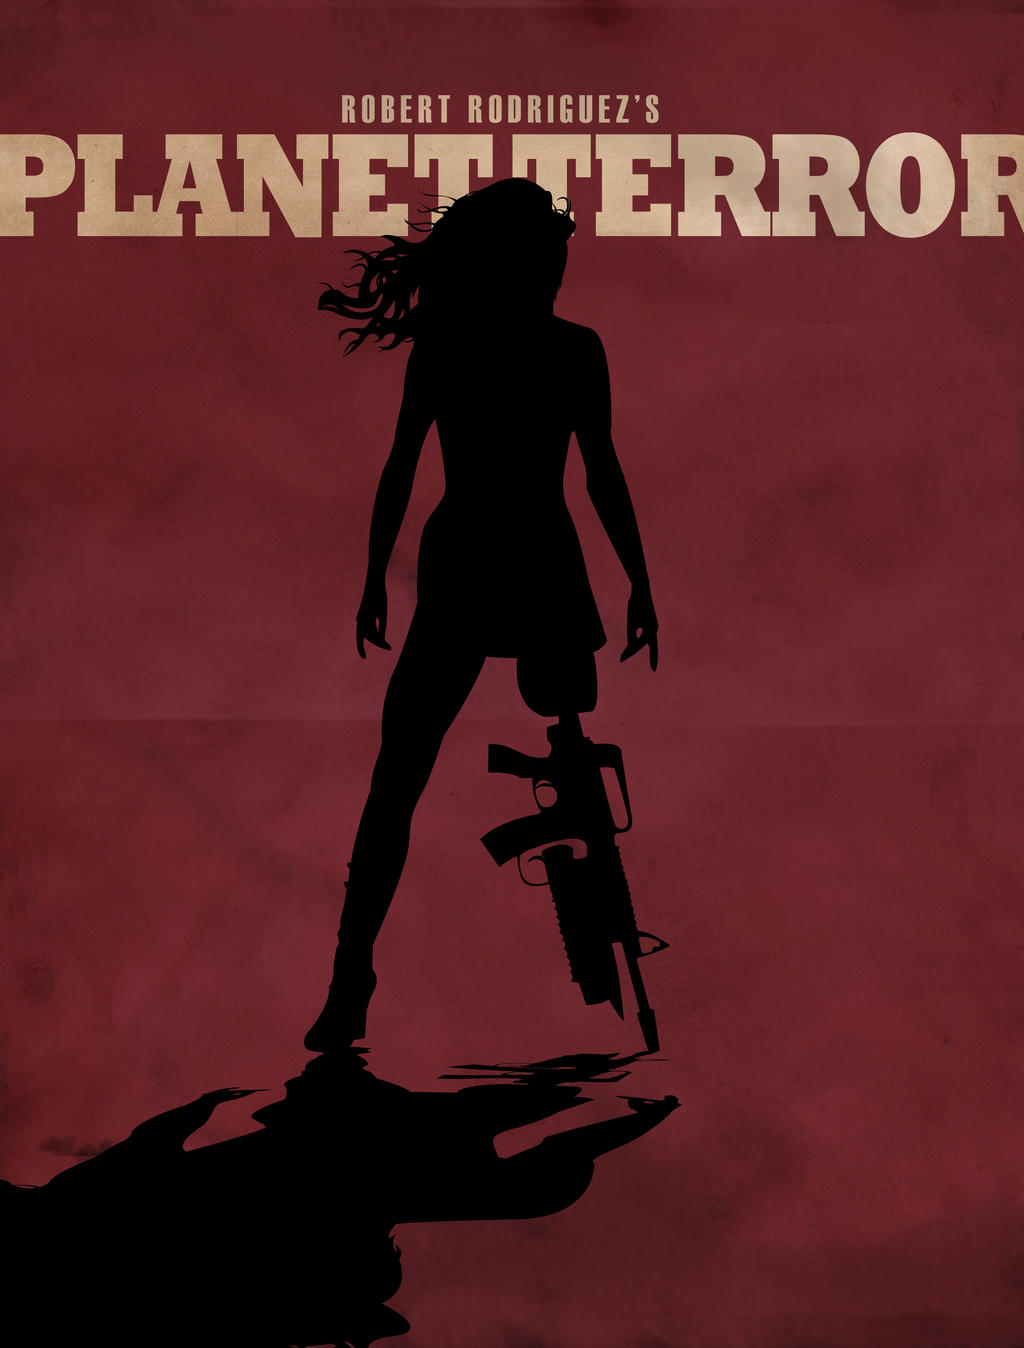 planet terror by cheduardo2k on deviantart